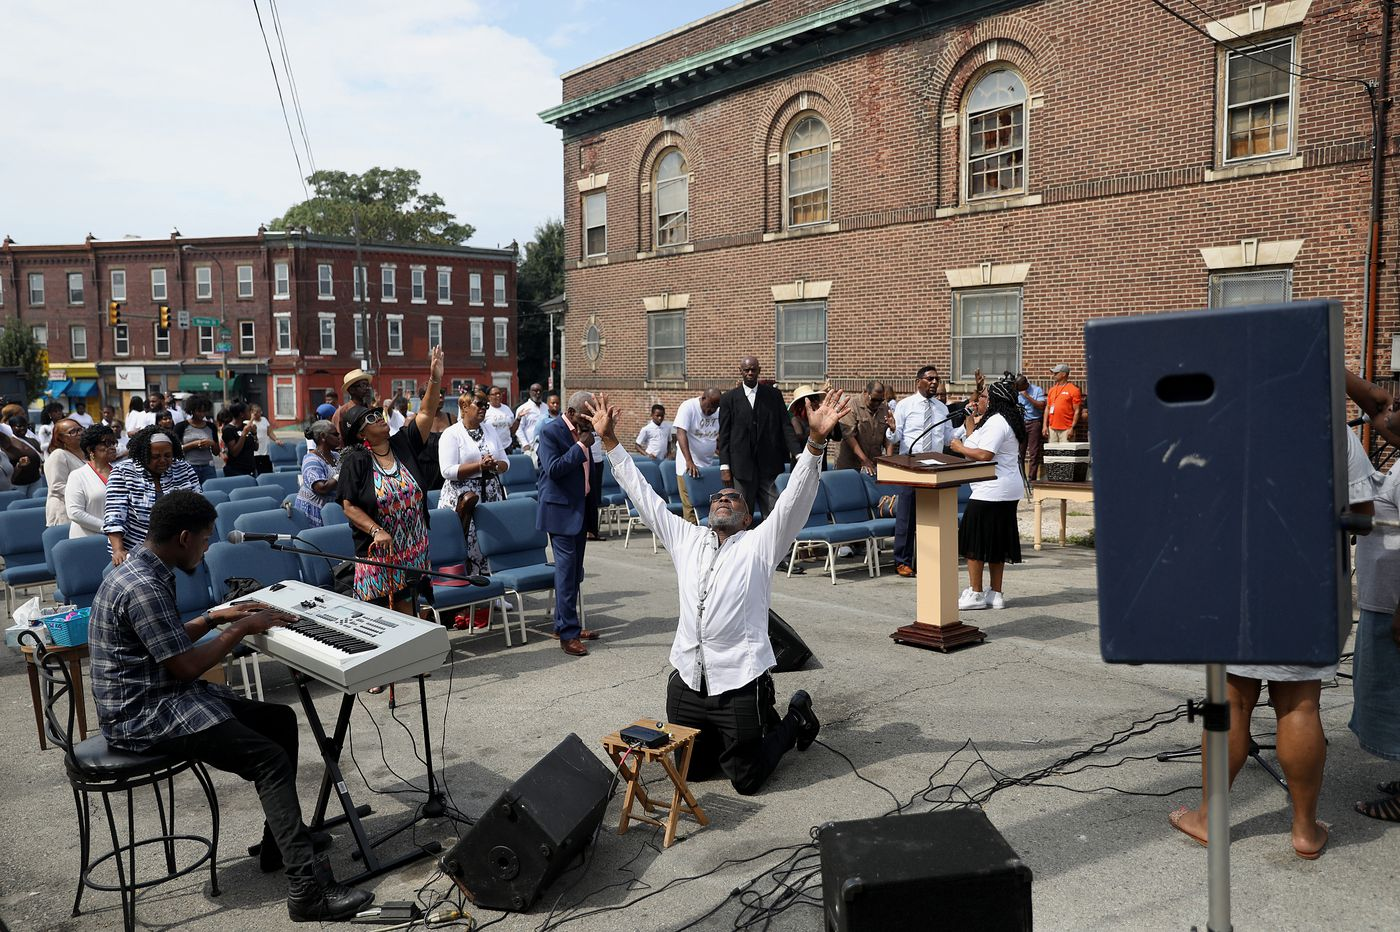 After fire destroyed their church, Greater Bible Way Temple members worshiped in the street on Sunday